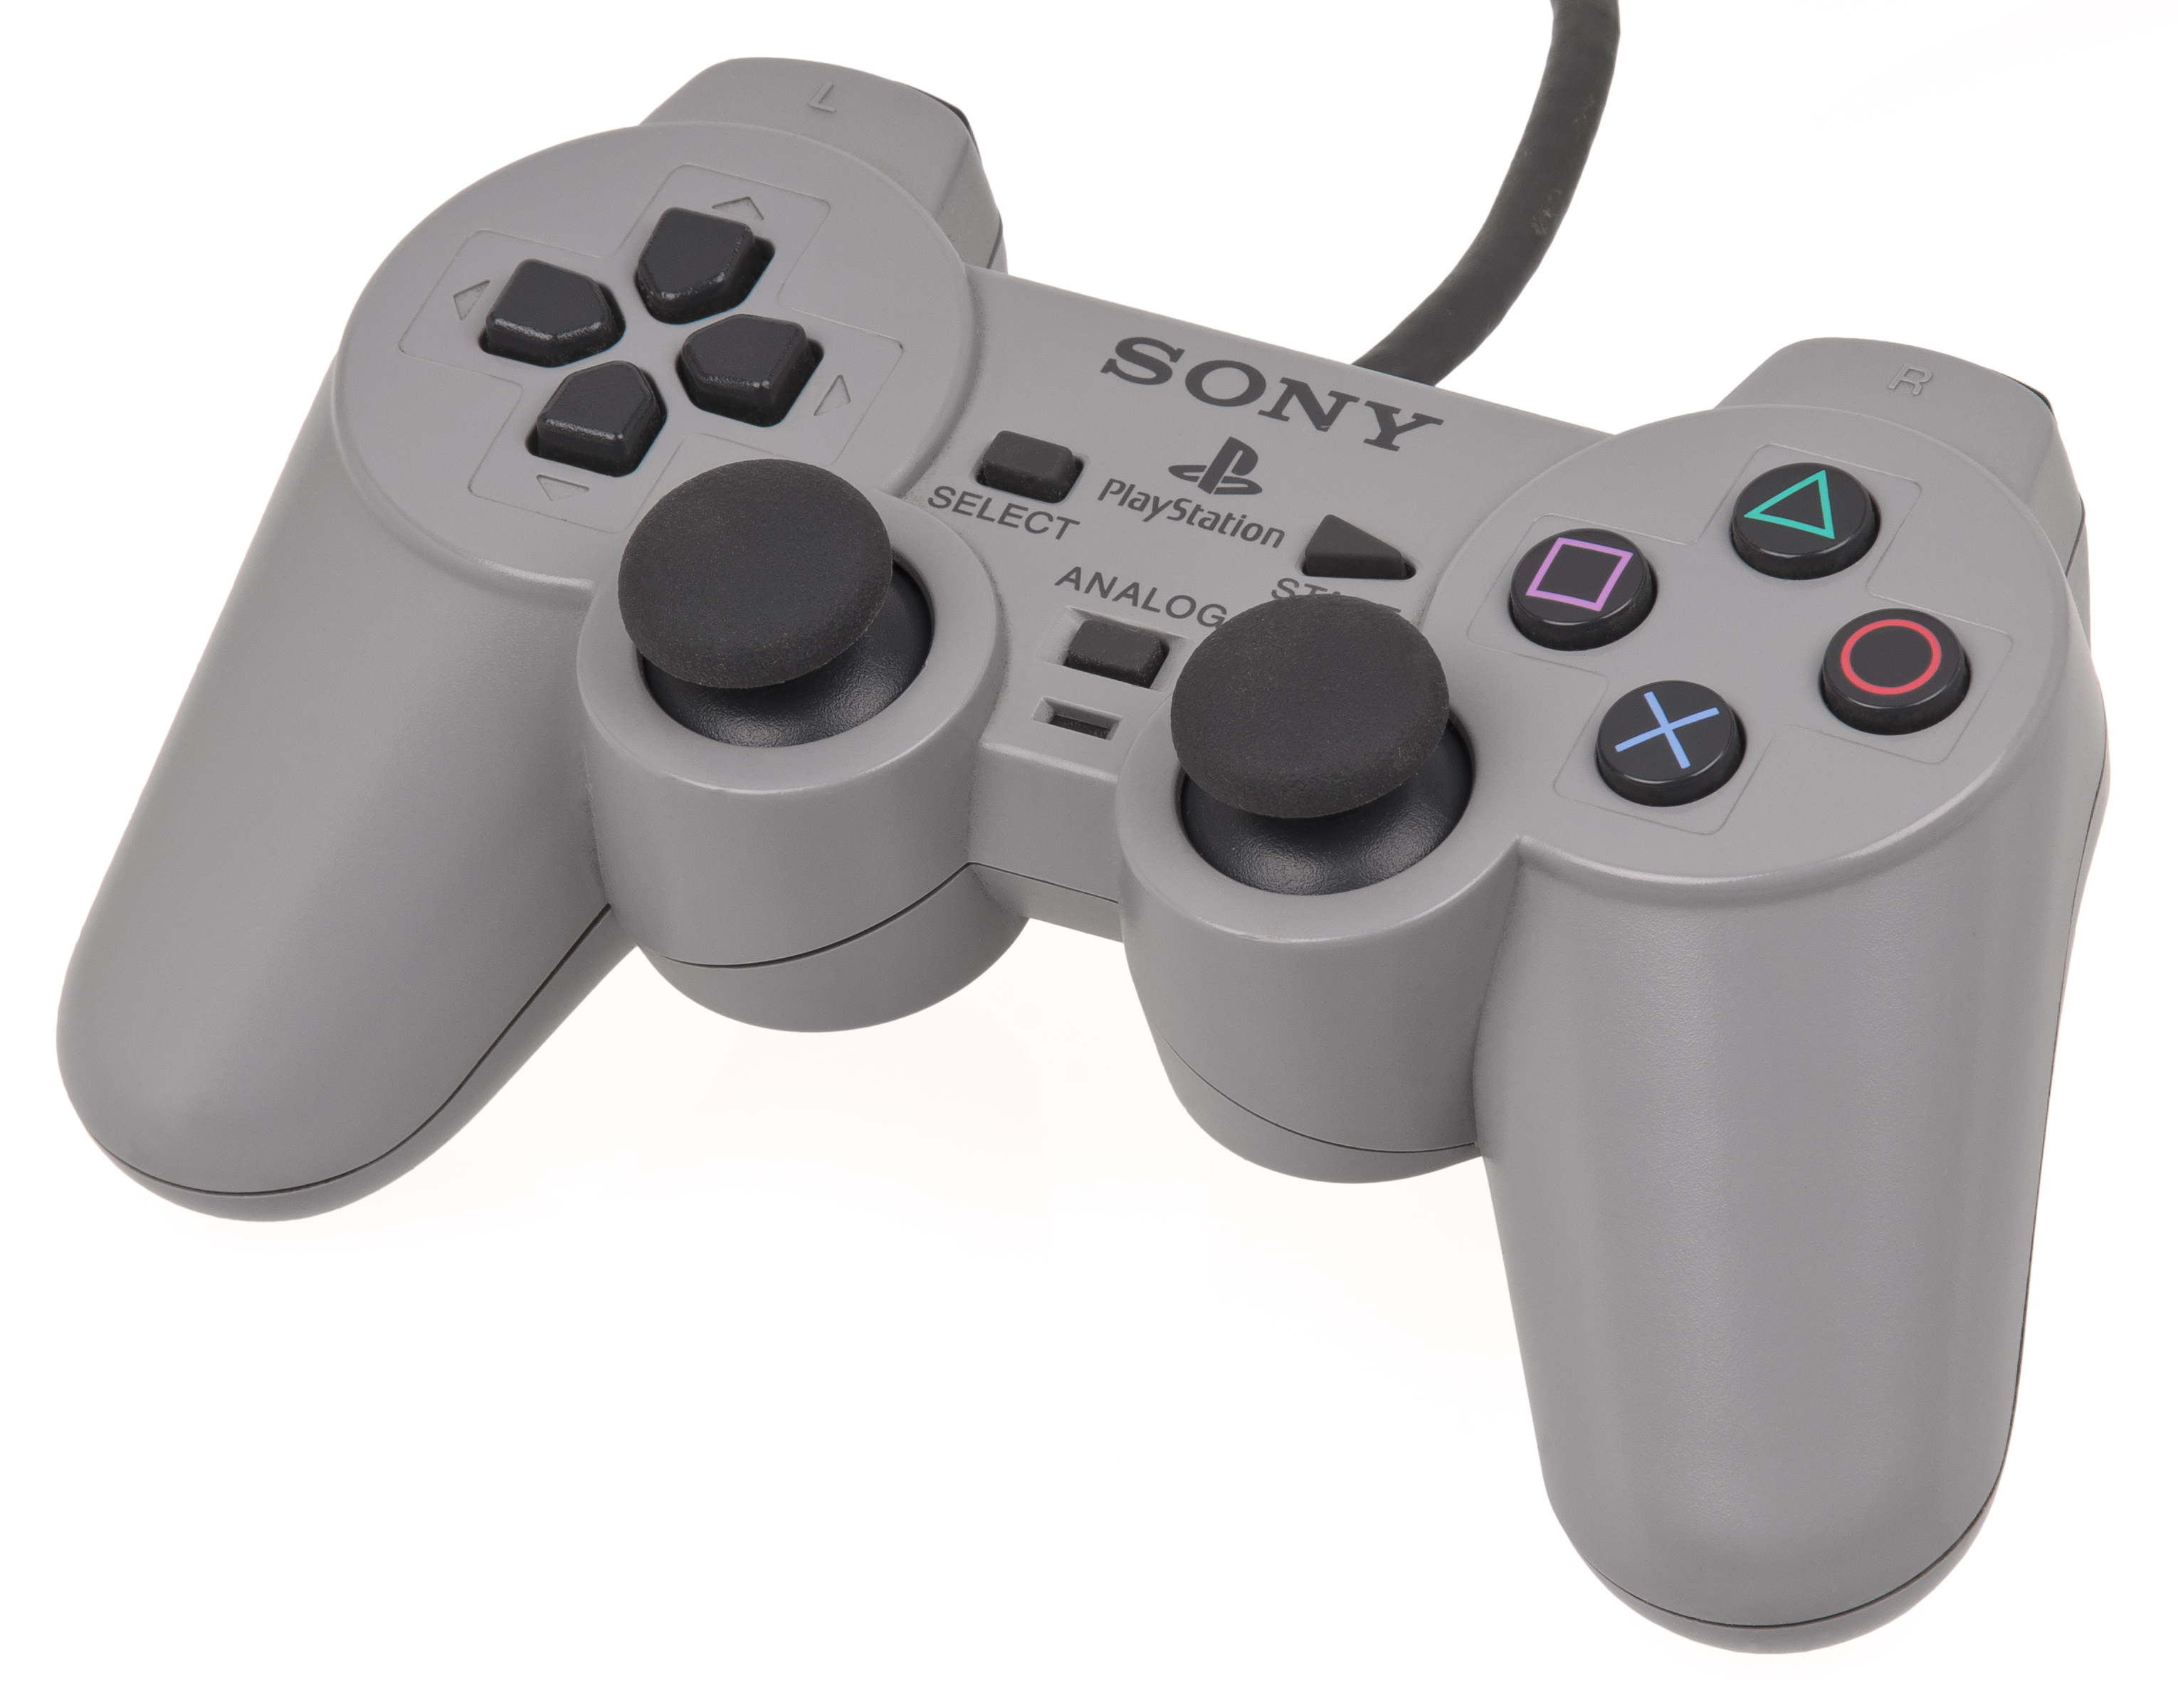 DualShock 1. Source: Wikipedia